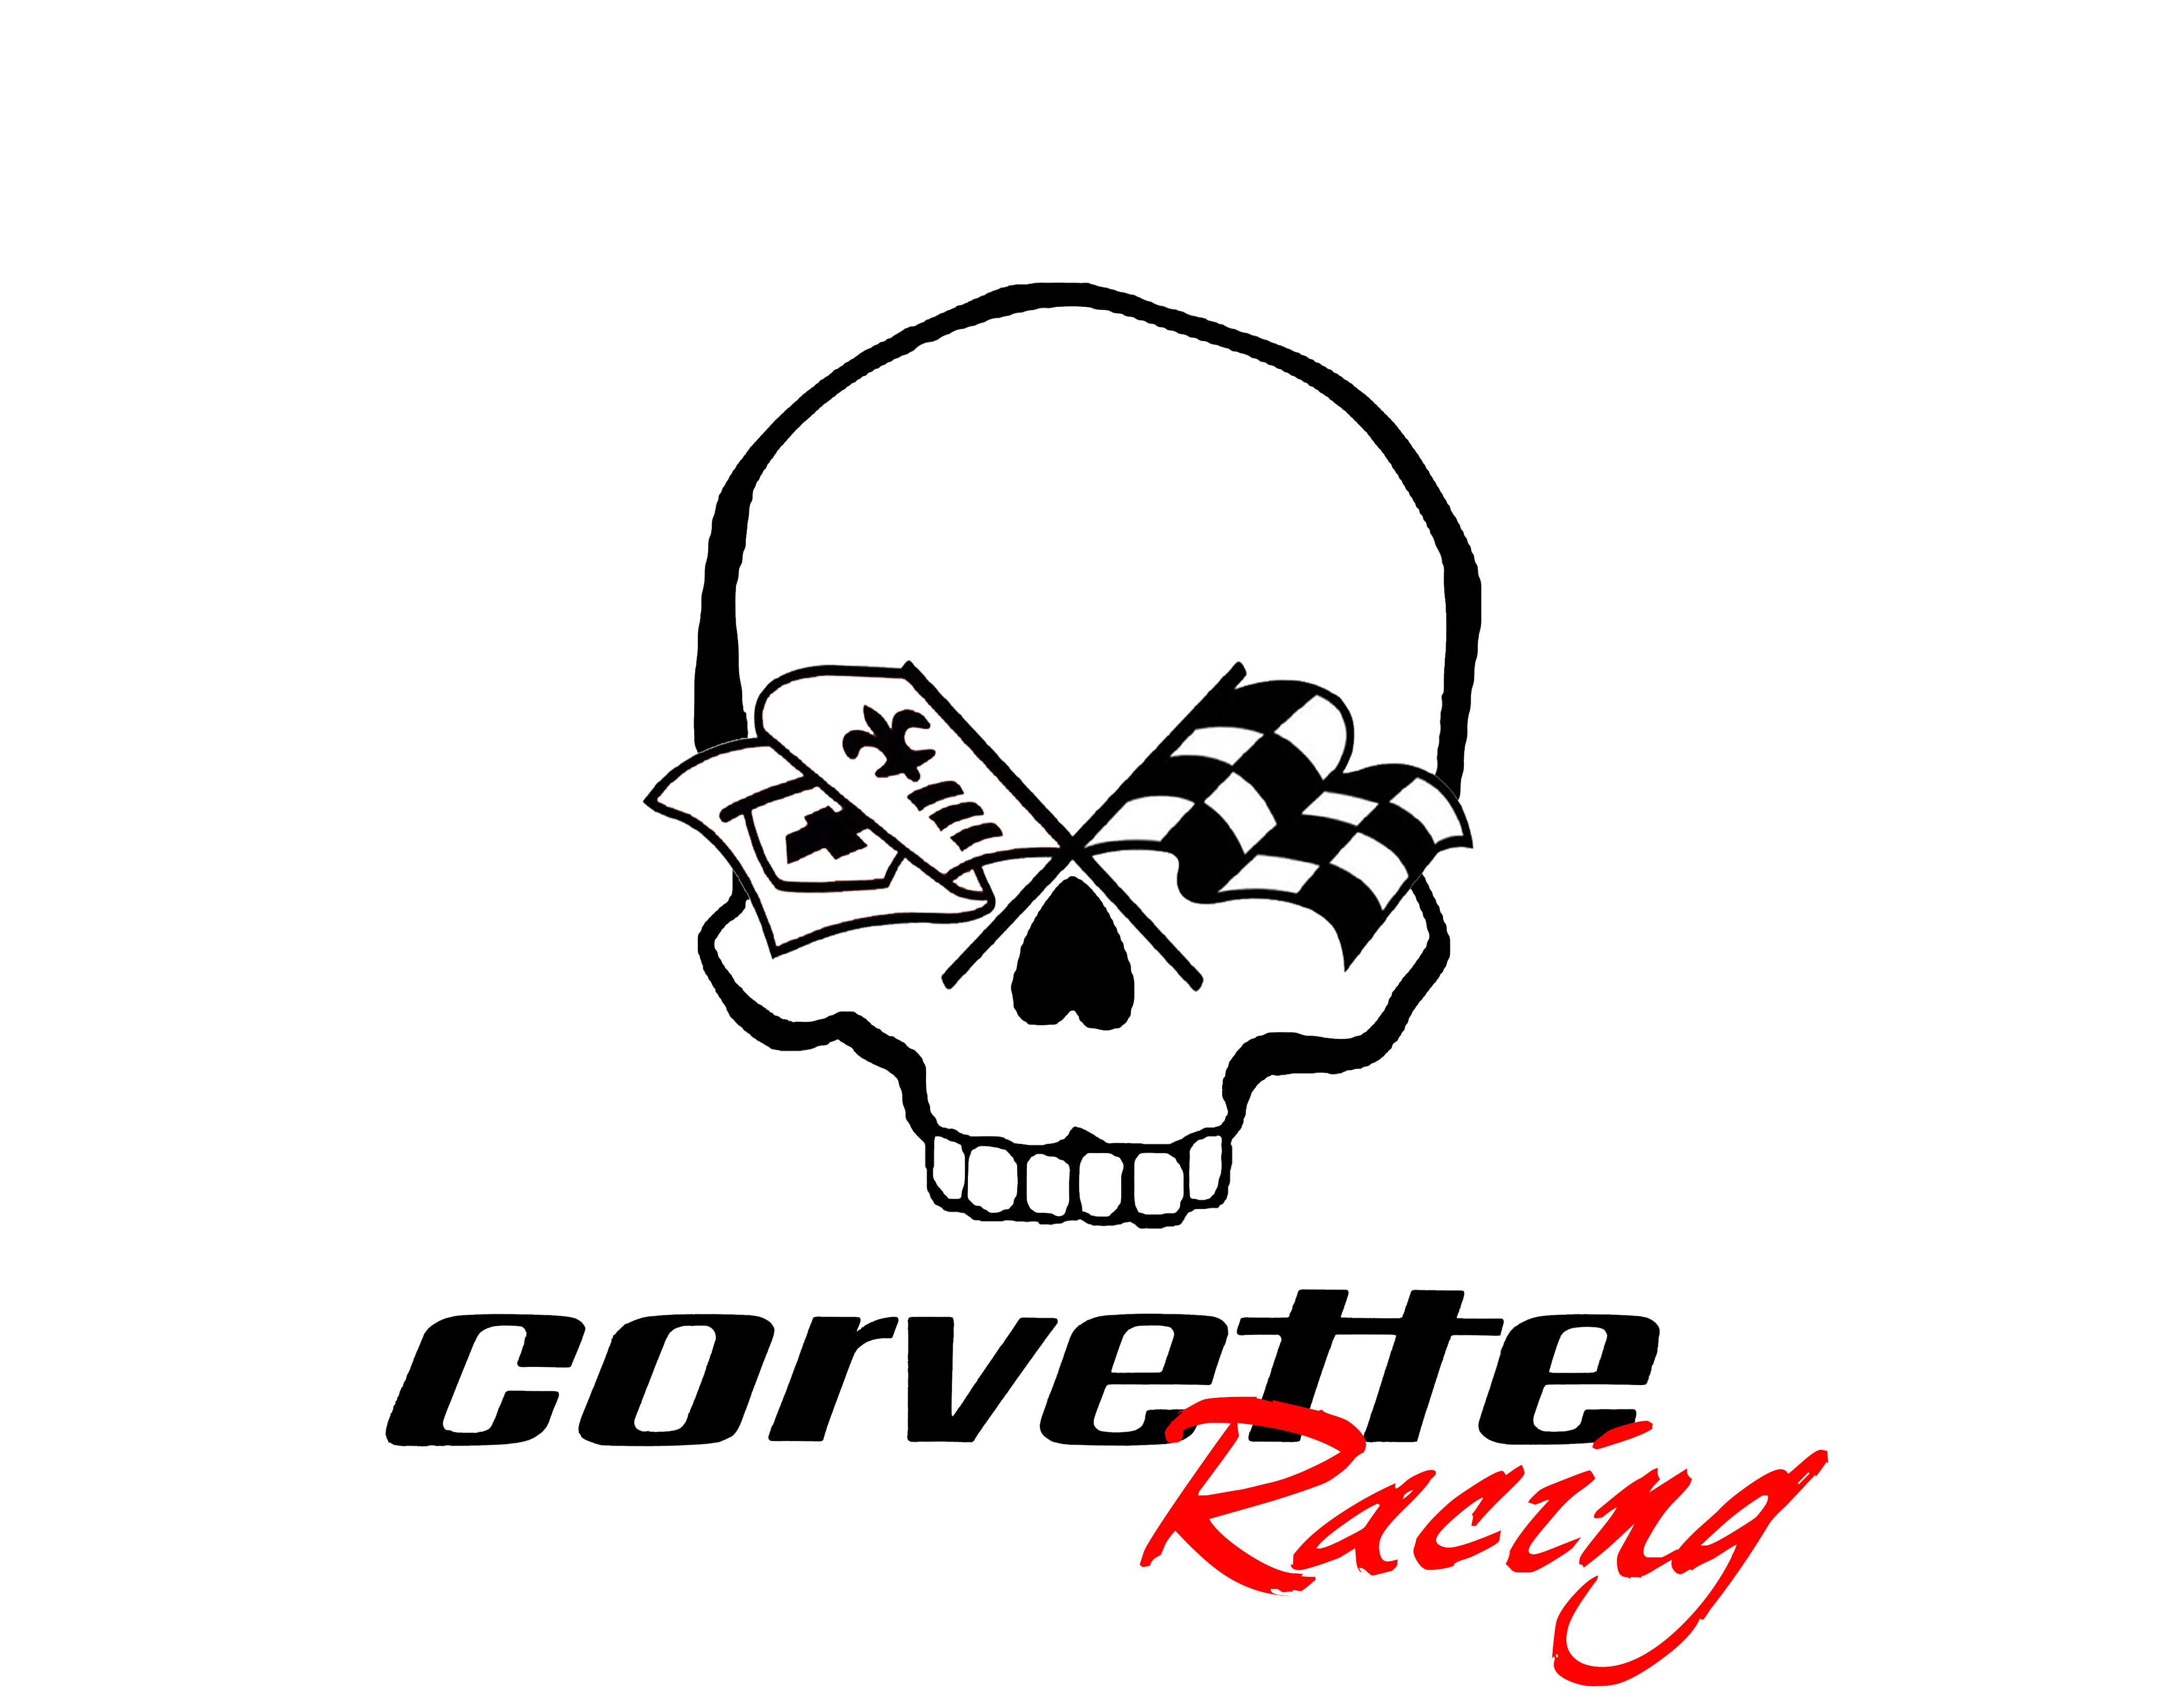 Corvette Jake Logo Pictures To Pin